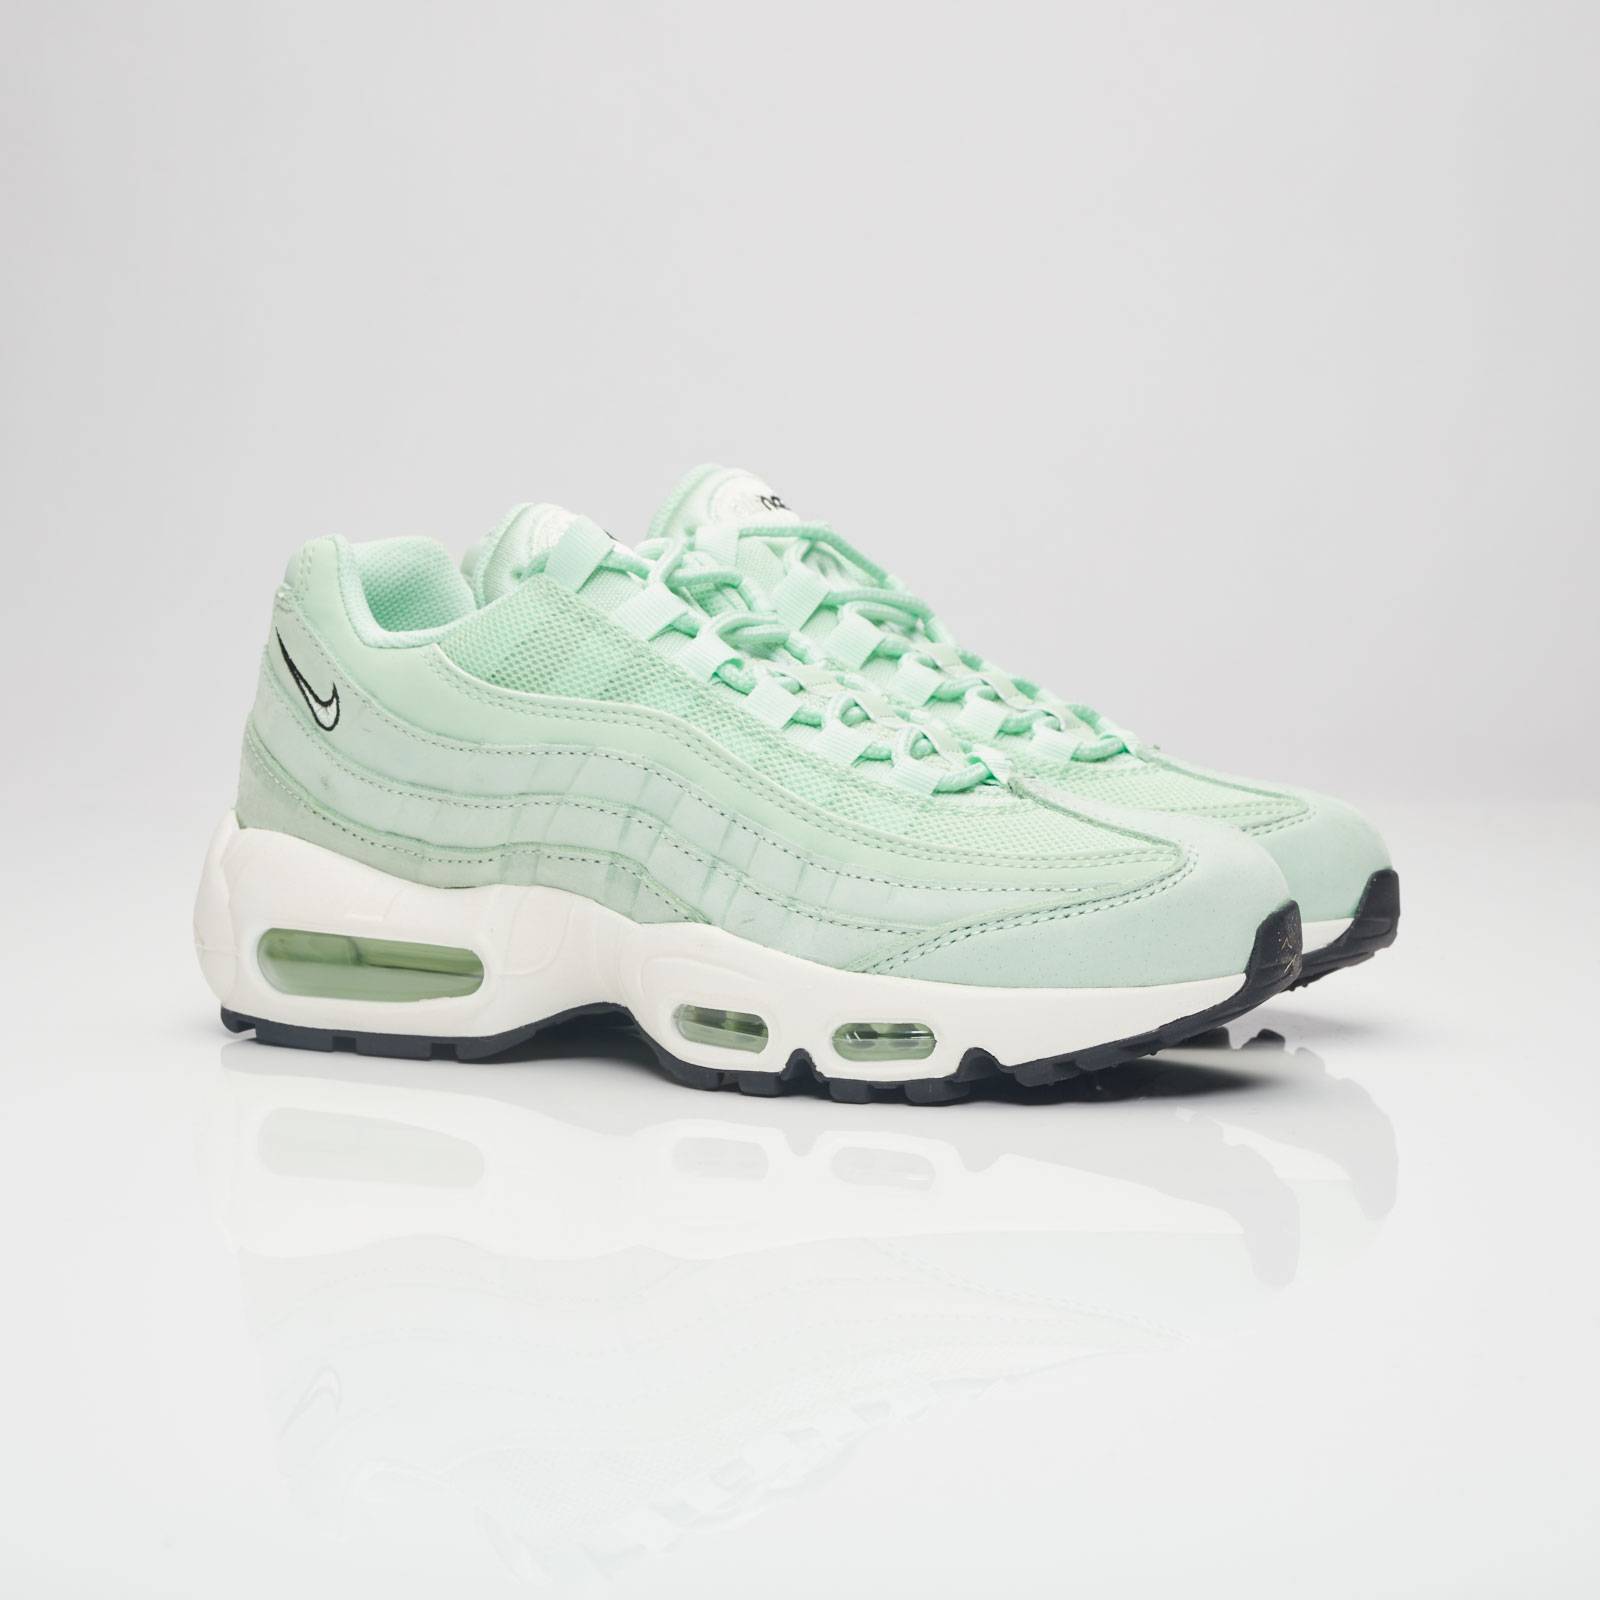 buy online 50f86 631e1 Nike Wmns Air Max 95 Premium - 307960-301 - Sneakersnstuff ...